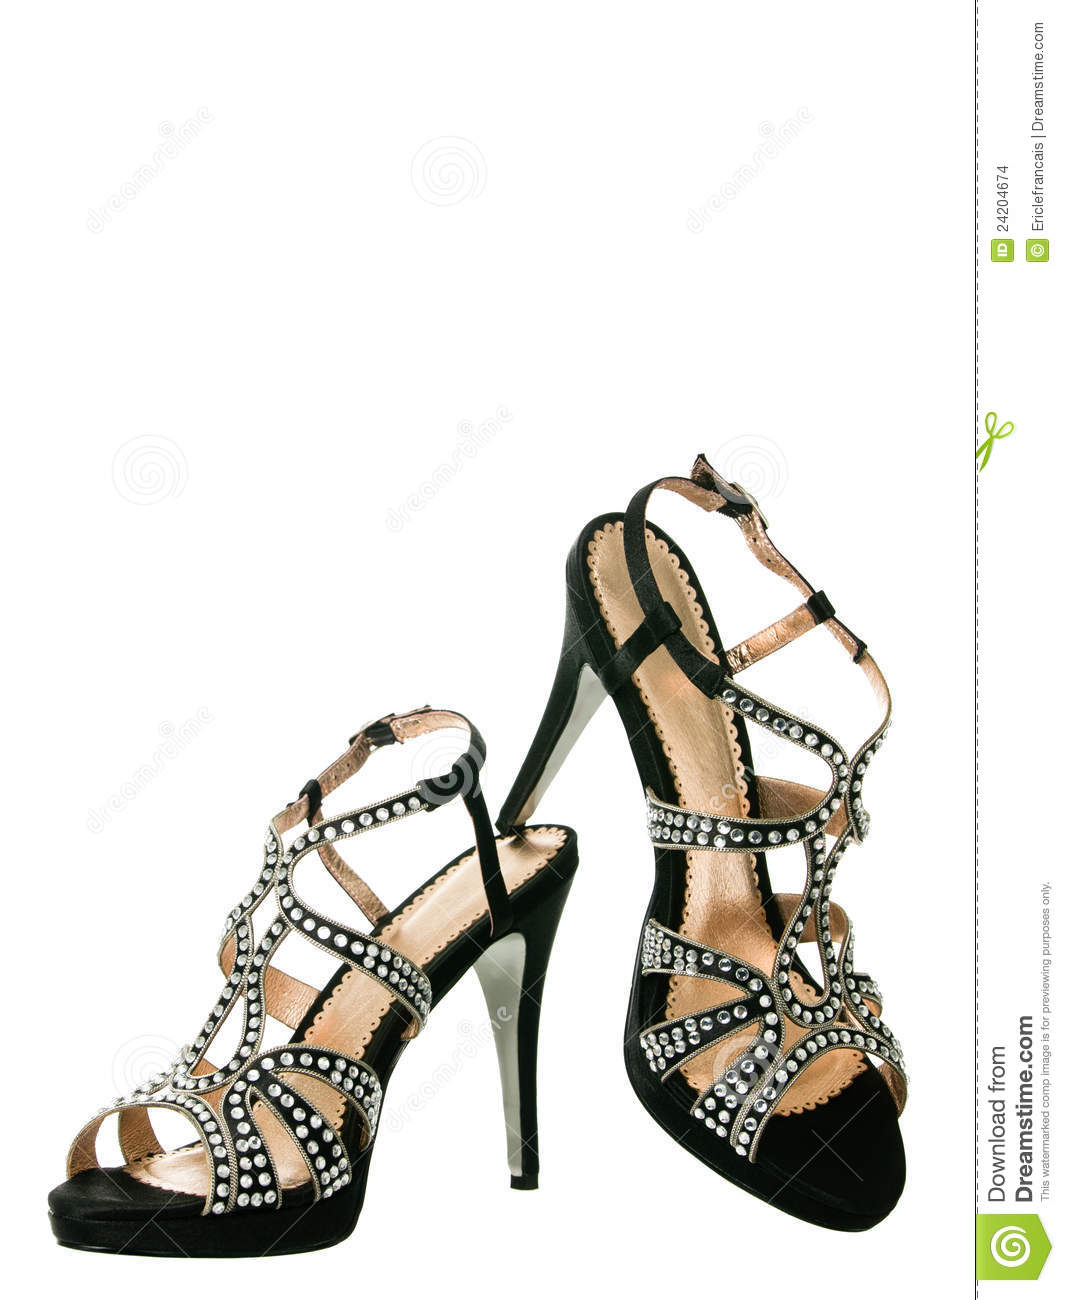 A women can't wear high heels for customary utilize and are not proper for easygoing excursions. Thus, sexy shoes for